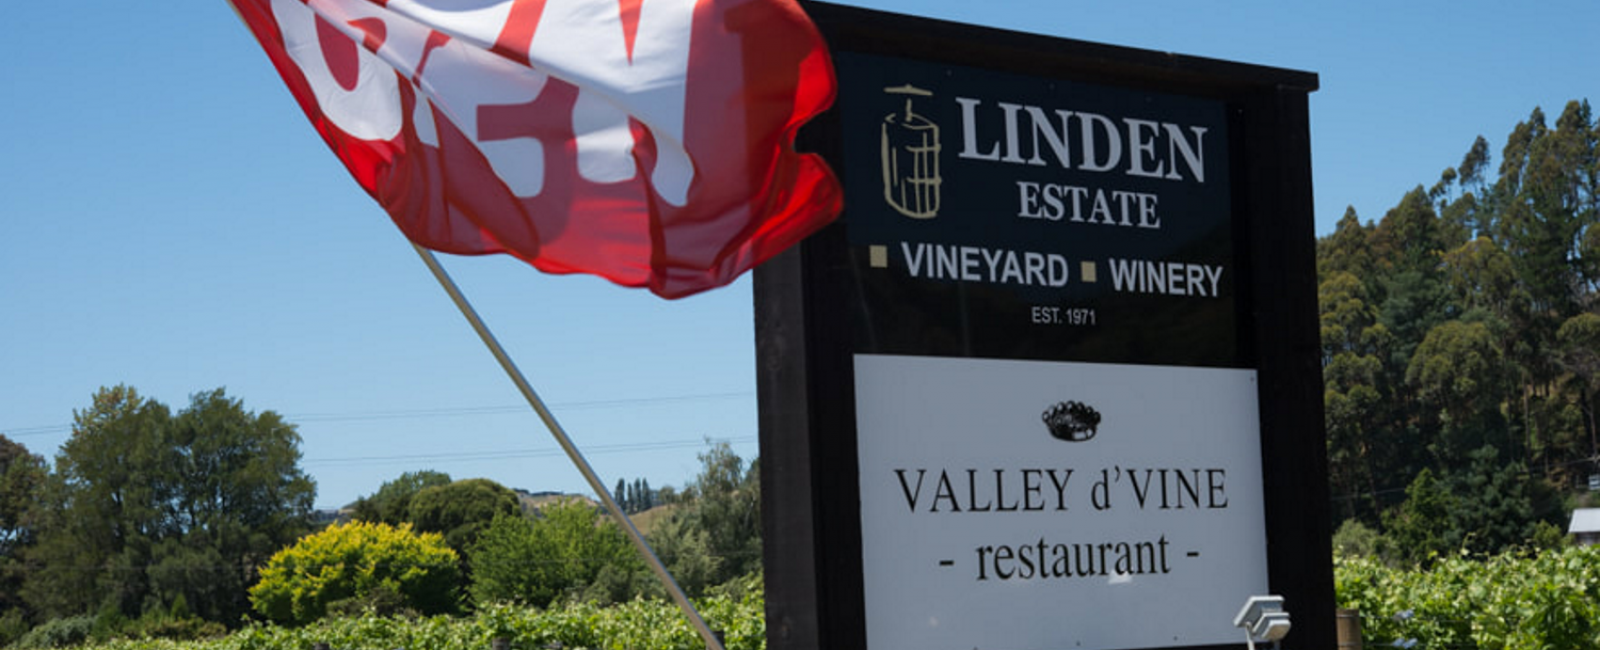 Linden Estate Winery and Valley d'Vine Restaurant